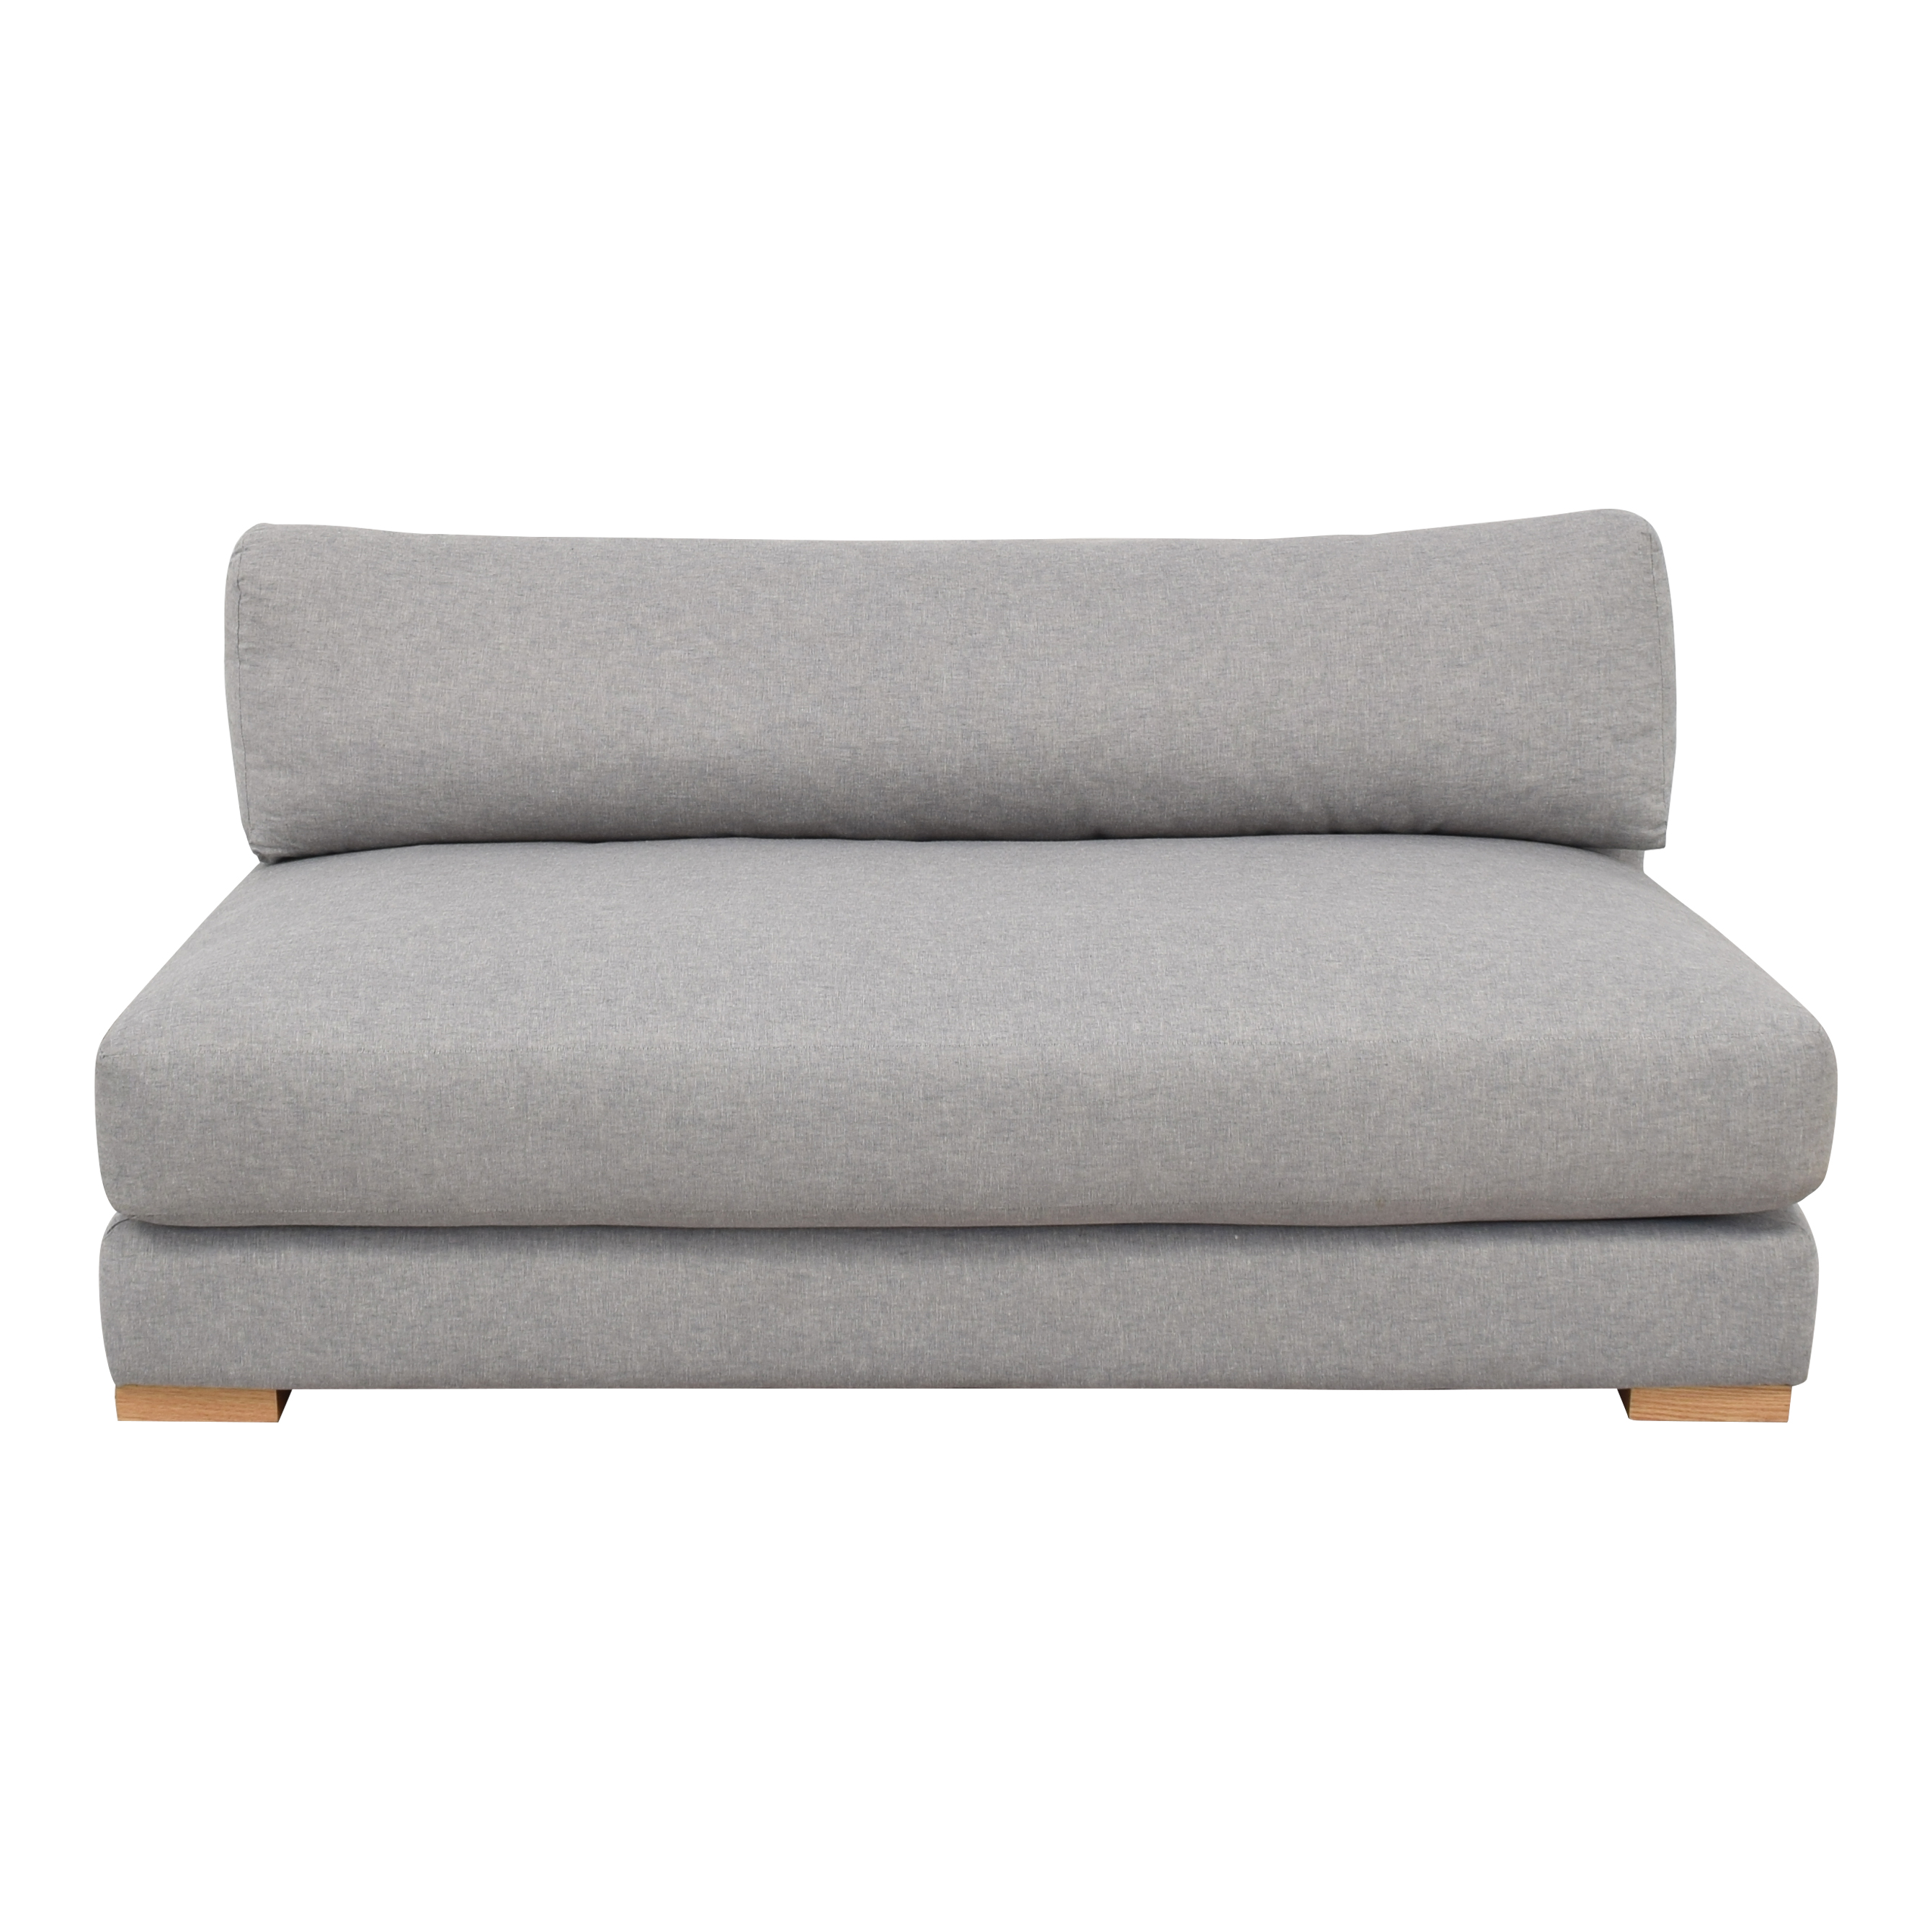 shop CB2 CB2 Piazza Snow Apartment Sofa online